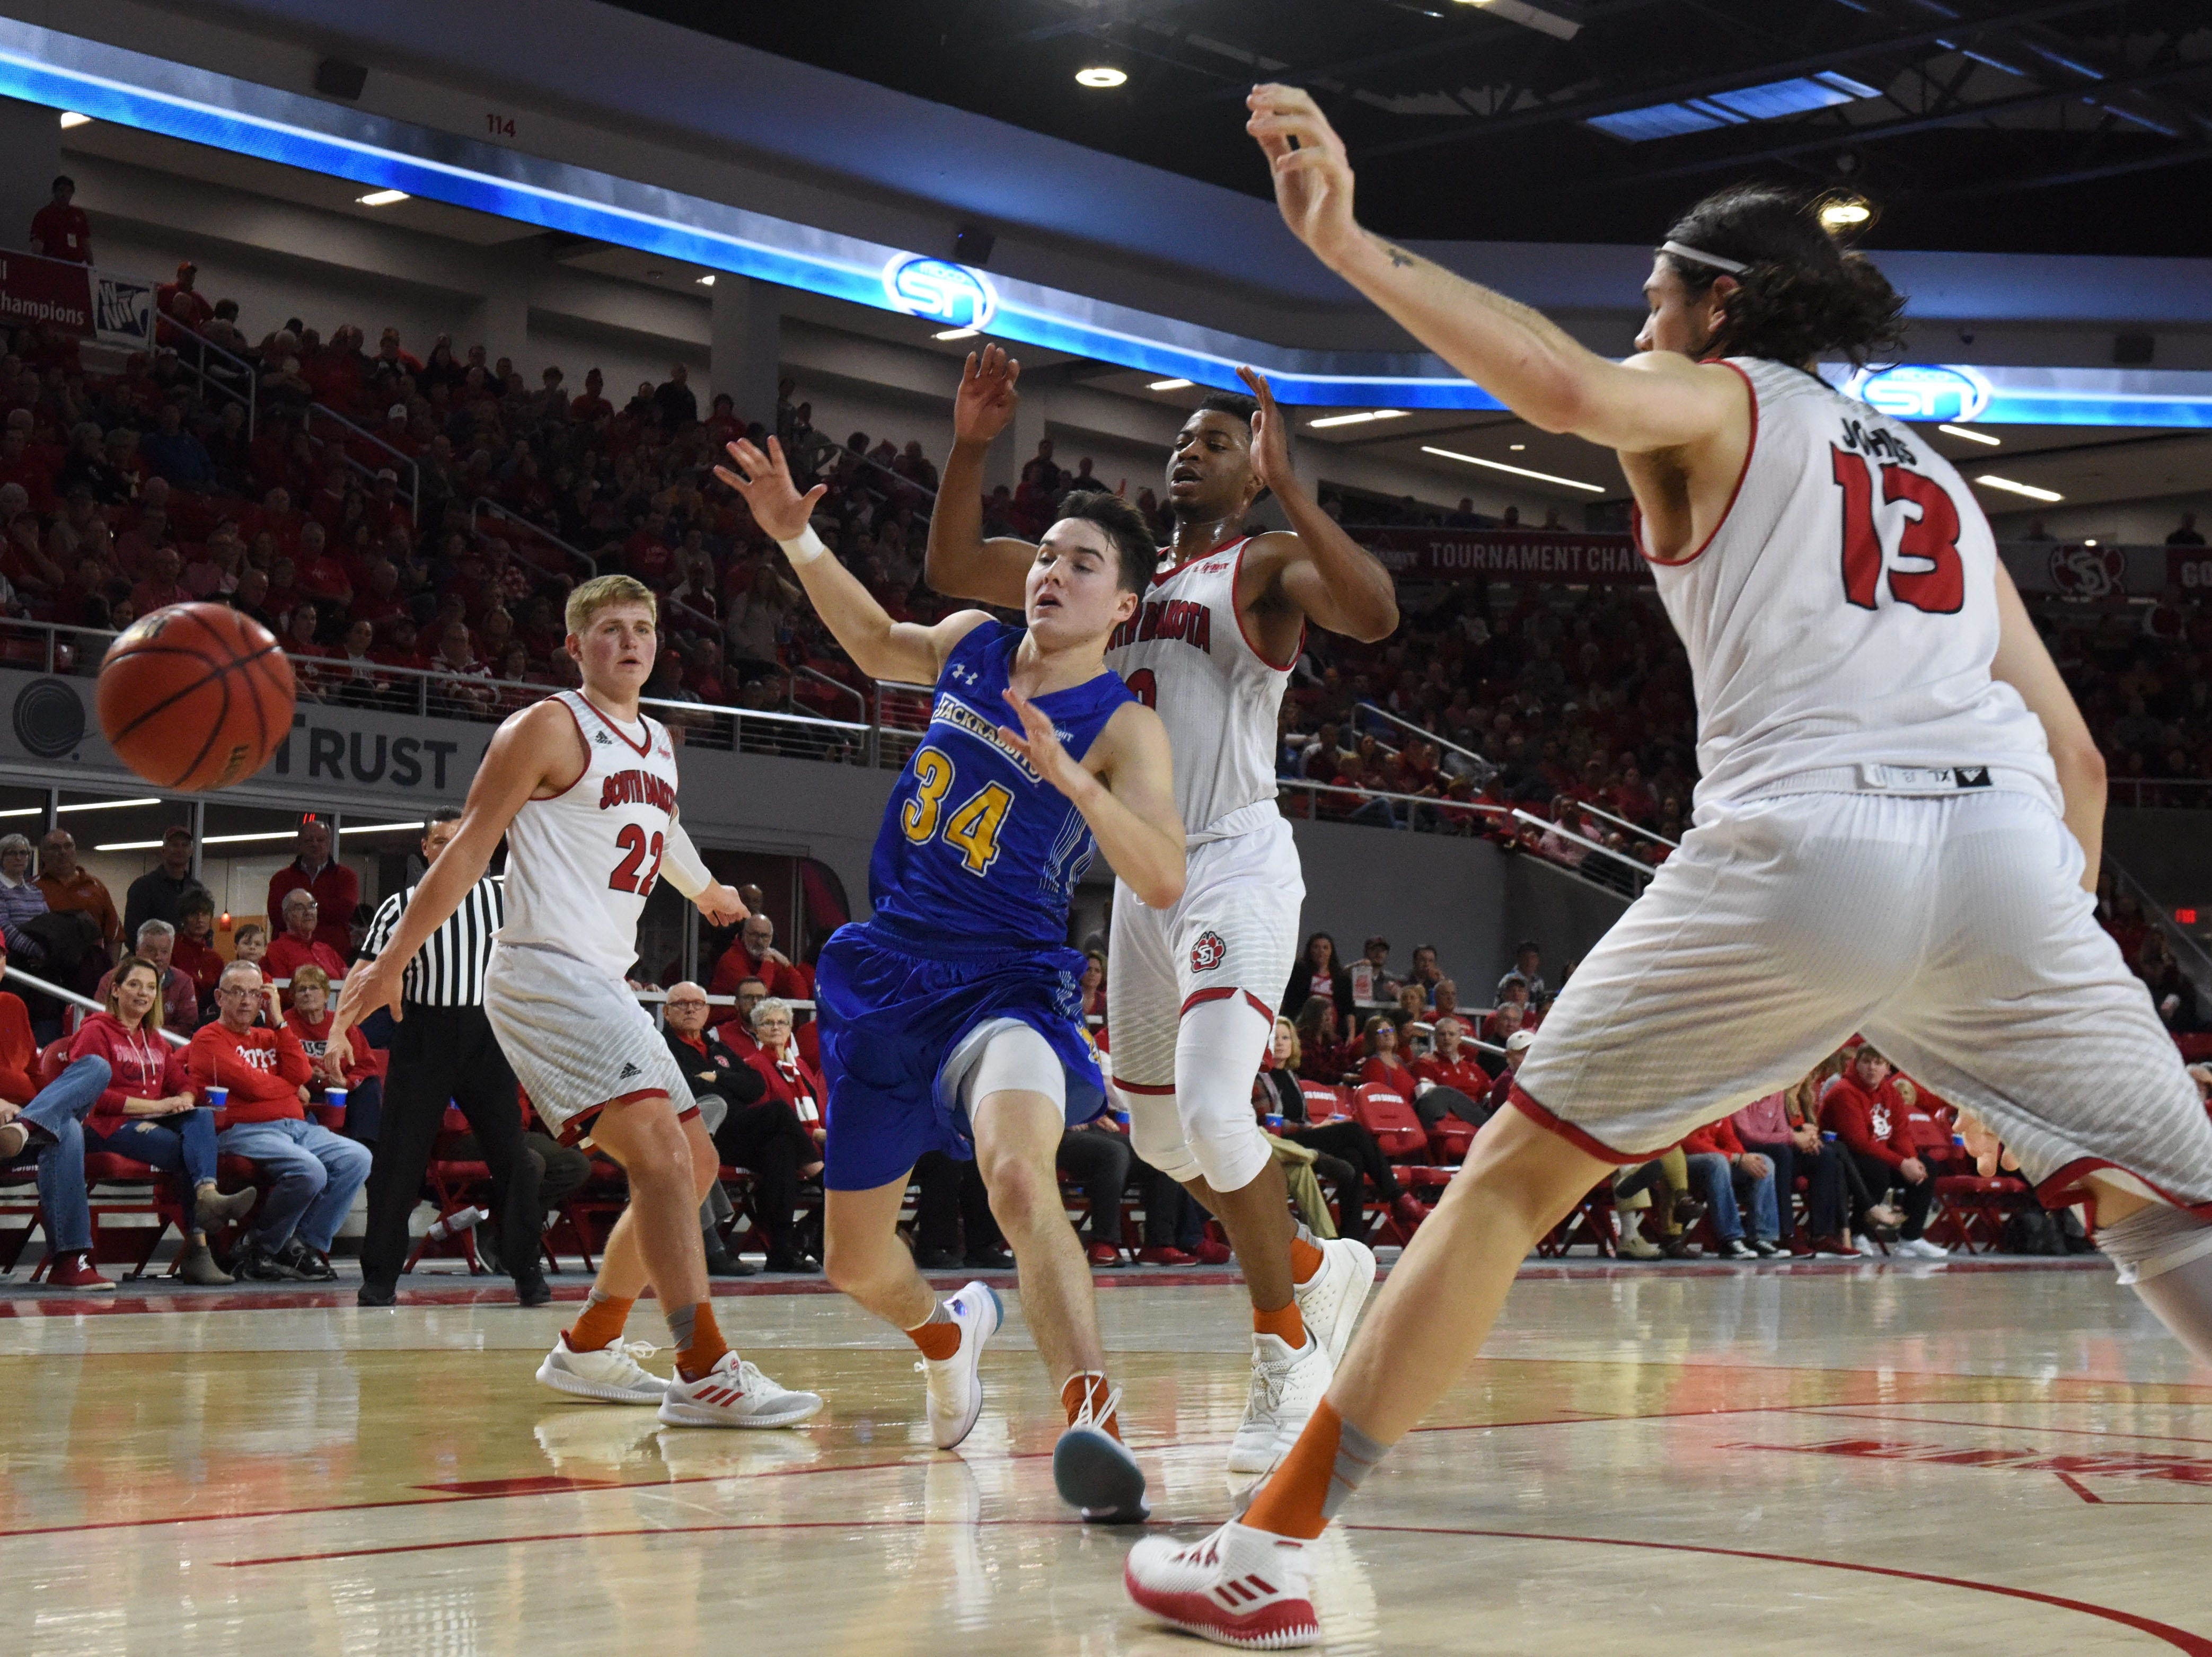 SDSU and USD players go for the ball during a game, Sunday, Jan. 6, 2019 in Vermillion, S.D.